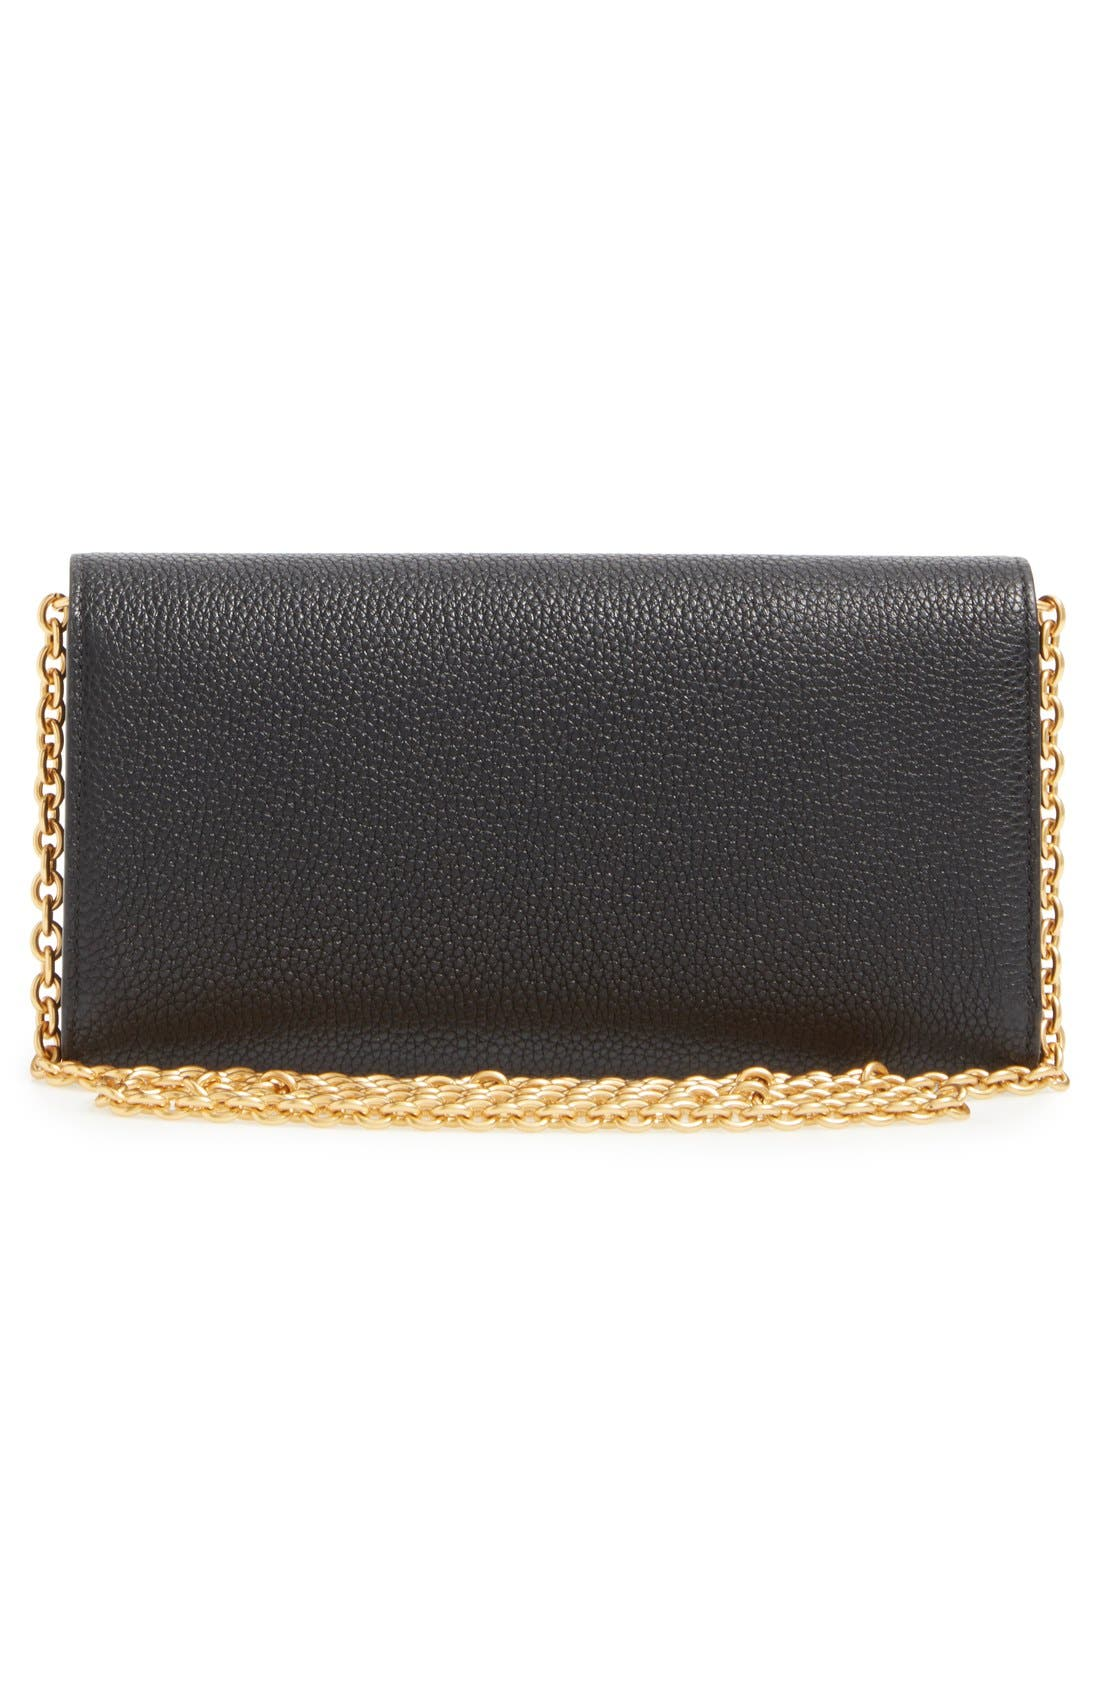 'Continental - Classic' Convertible Leather Clutch,                             Alternate thumbnail 3, color,                             Black